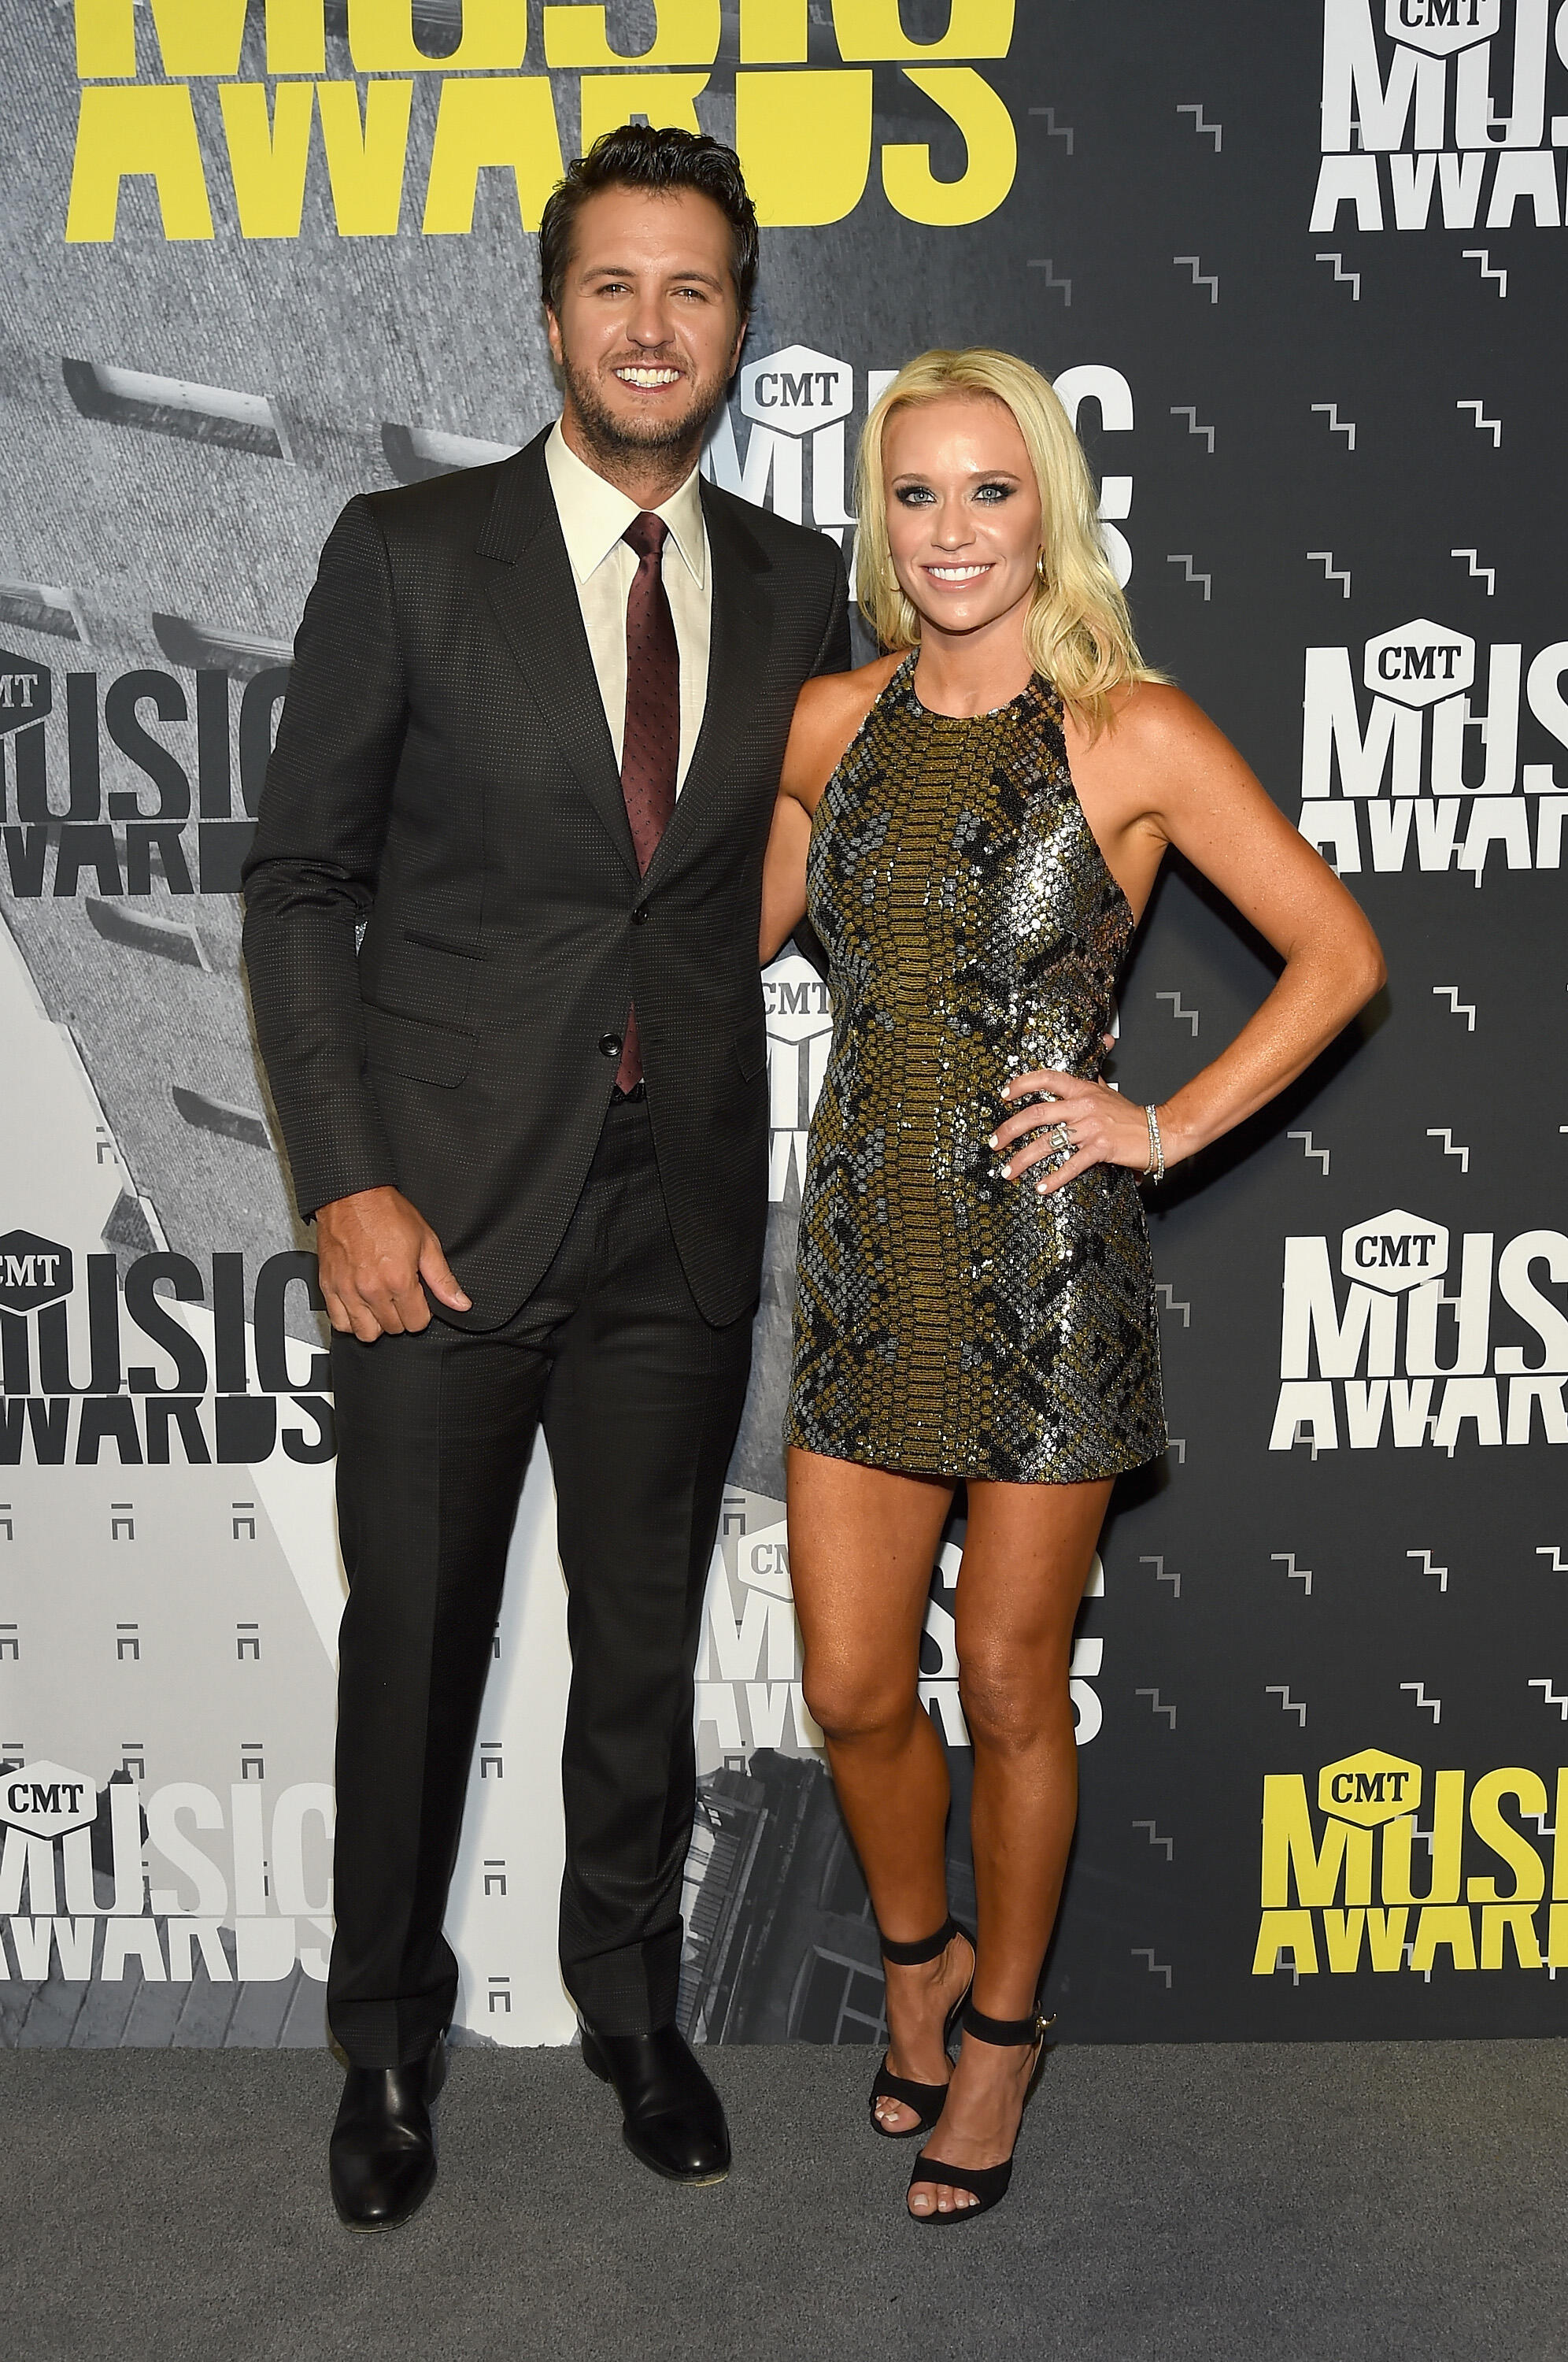 NASHVILLE, TN - JUNE 07: Singer-songwriter Luke Bryan (L) and Caroline Boyer attend the 2017 CMT Music awards at the Music City Center on June 7, 2017 in Nashville, Tennessee.  (Photo by Rick Diamond/Getty Images for CMT)